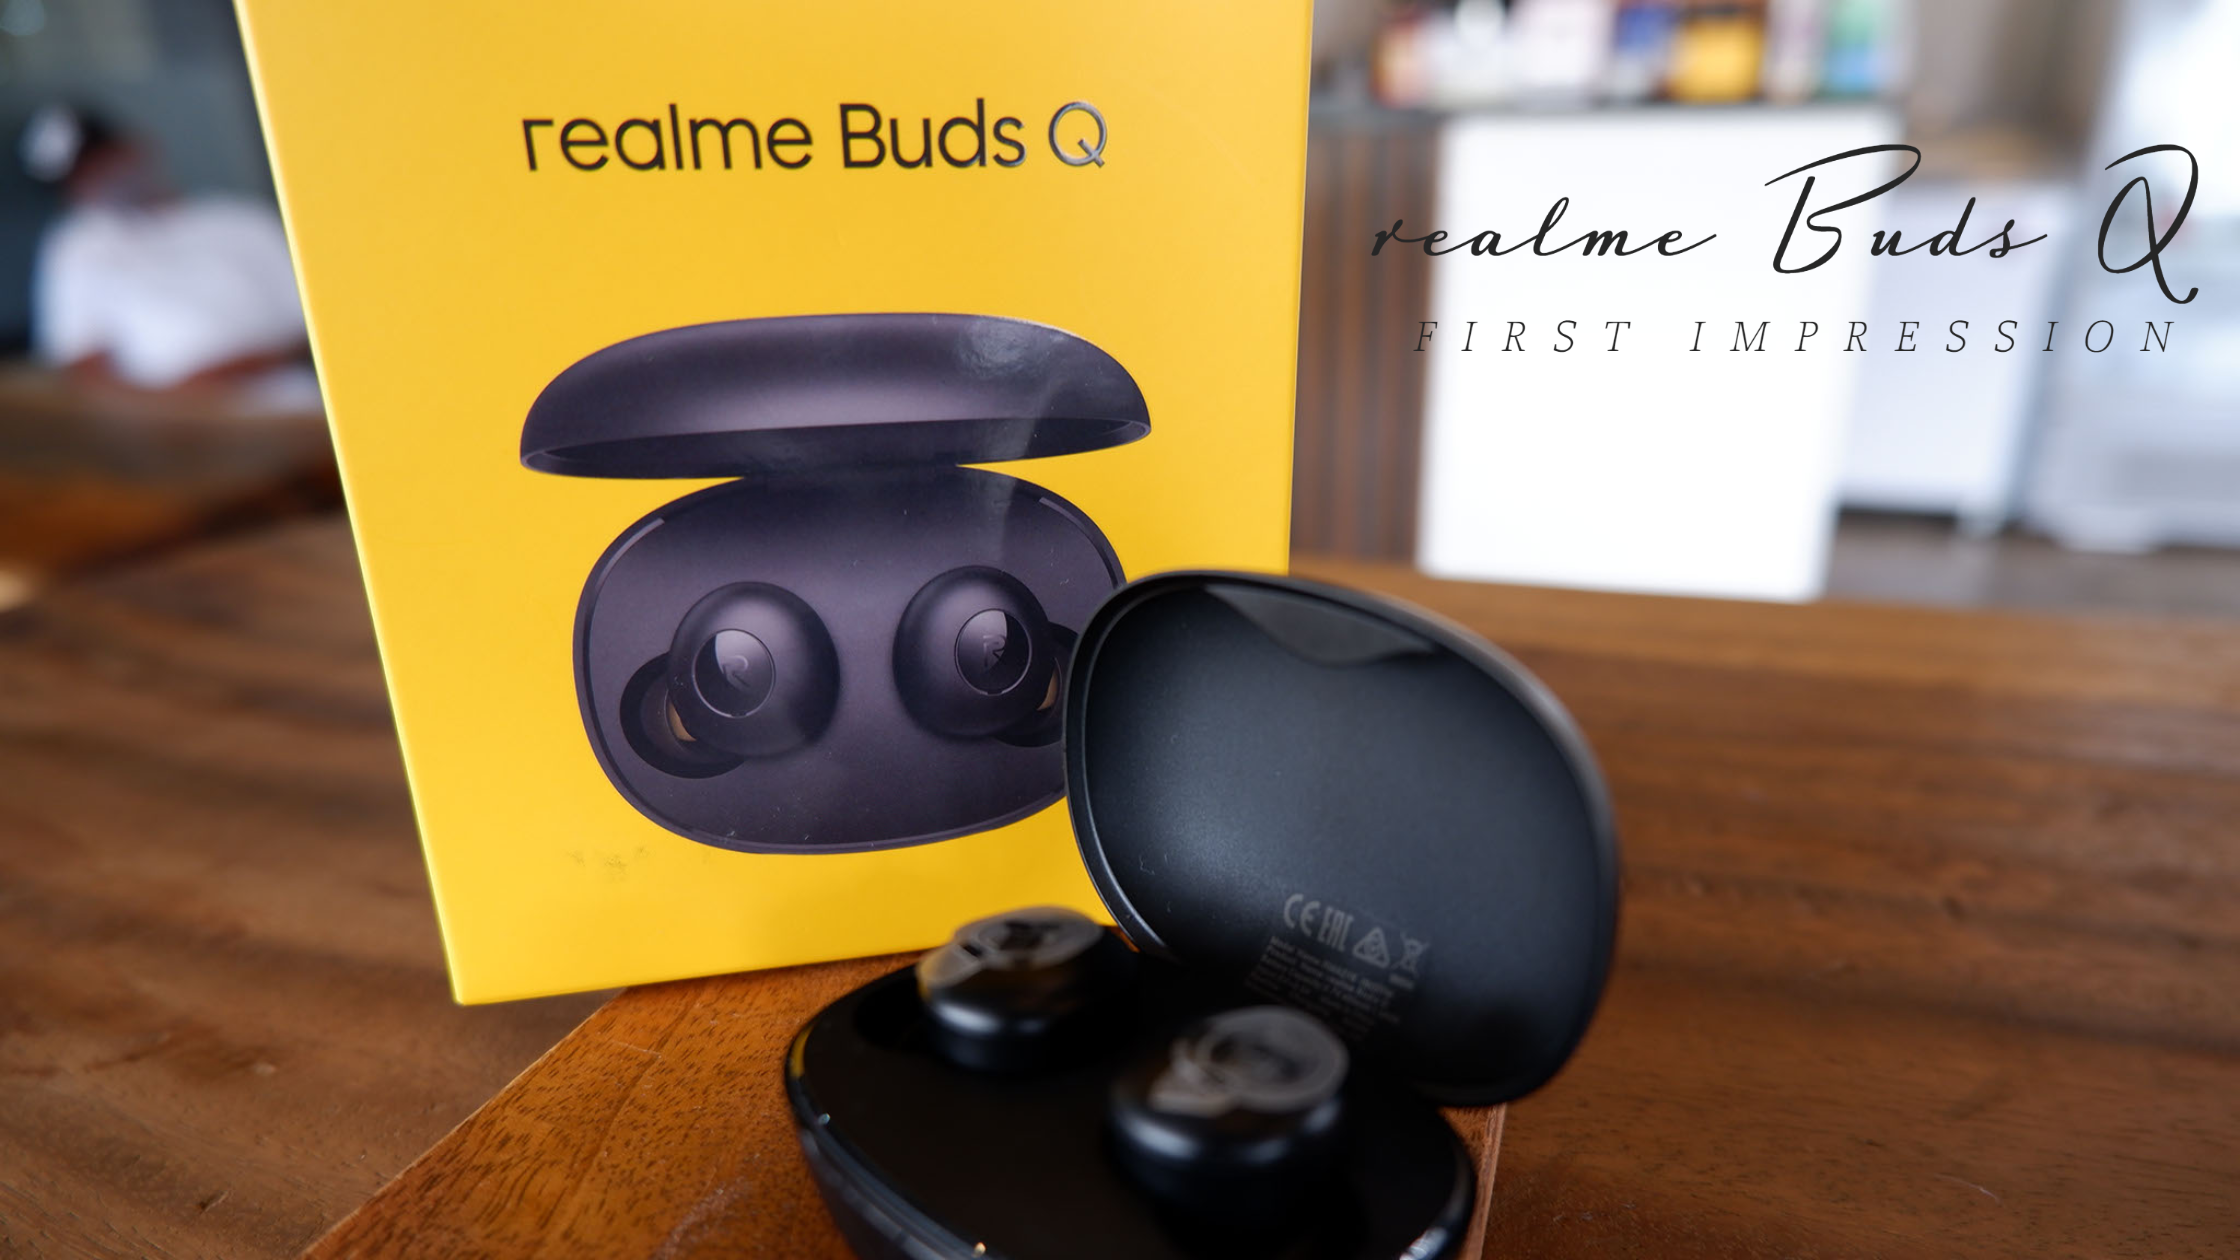 First impression: realme buds Q